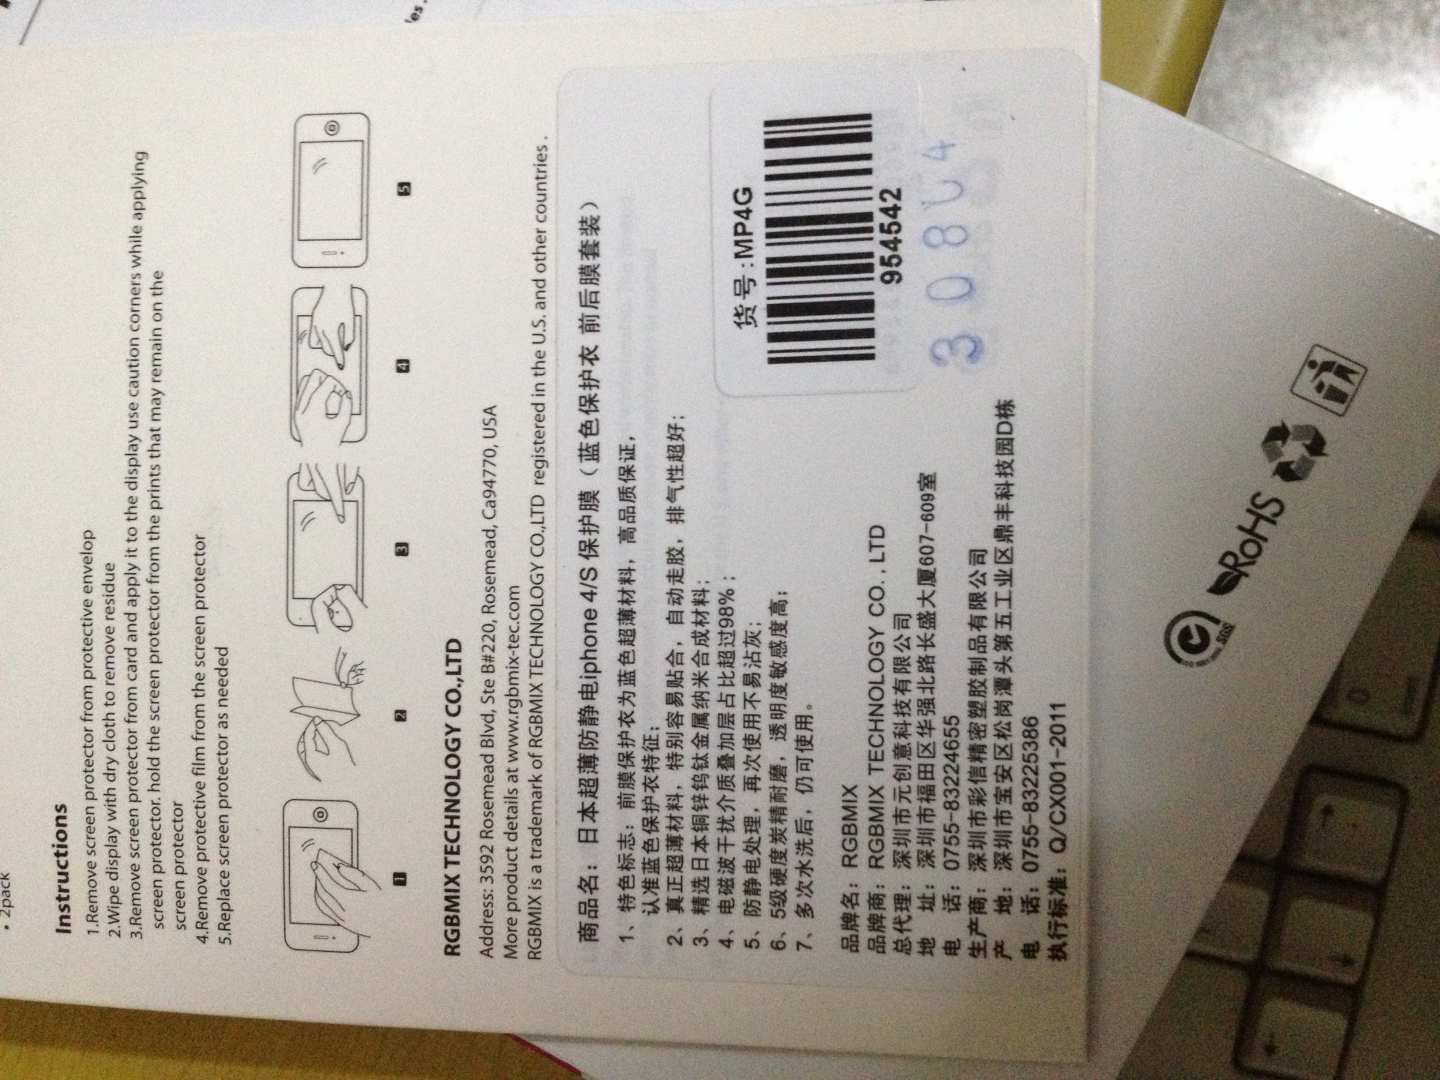 nike store canada apparel labeling 00291809 real